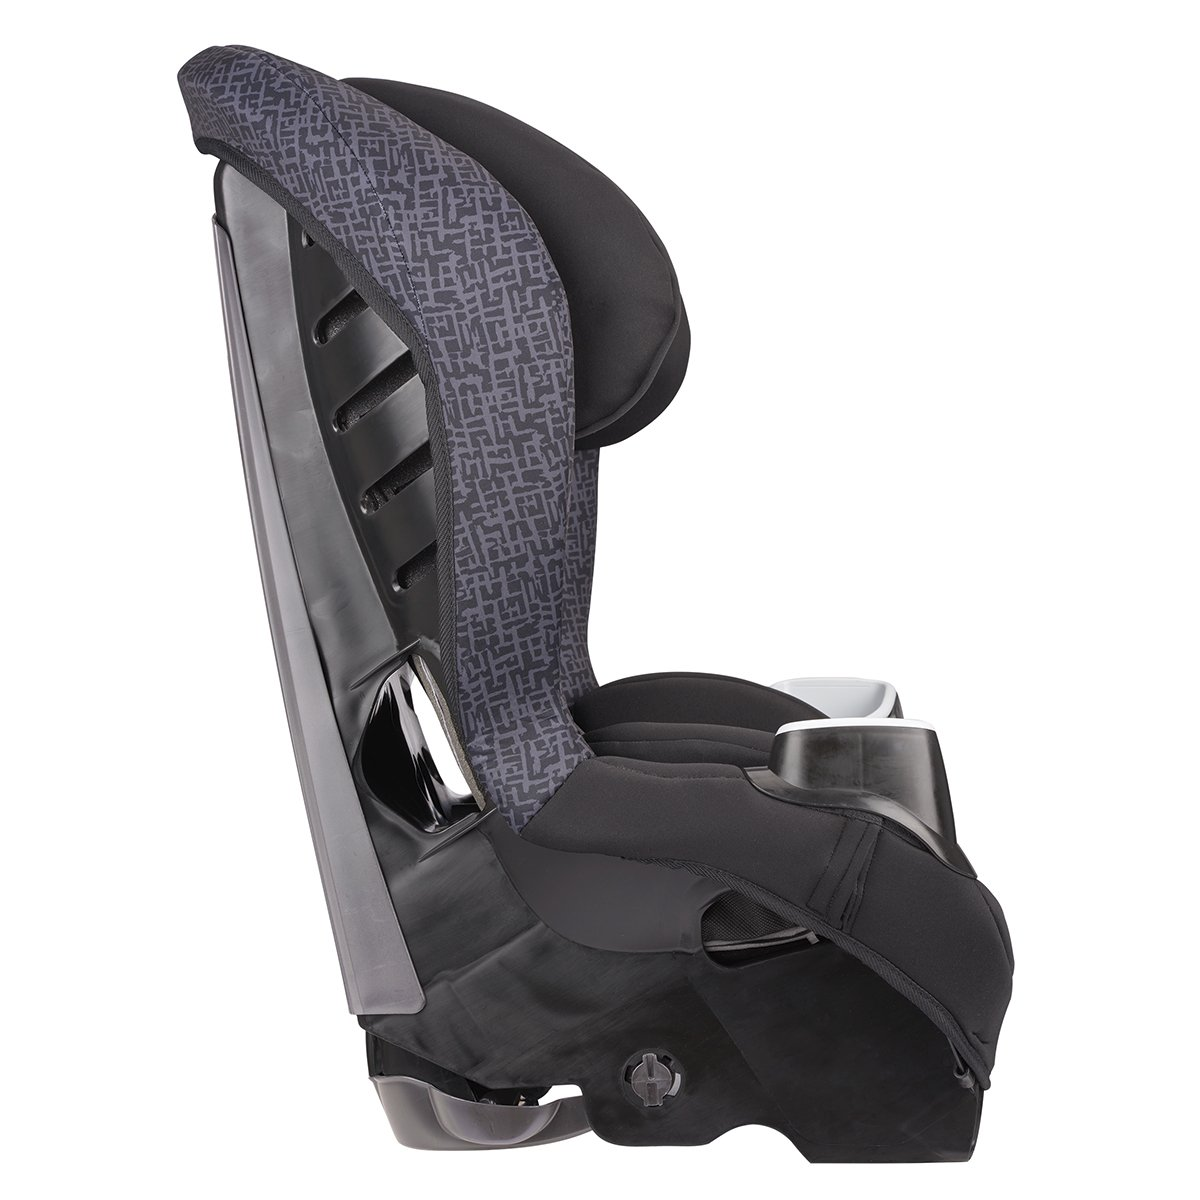 Evenflo Stratos 65 Convertible Car Seat, 2 Car Seats in 1, Forward Rear Facing Car Seat, Air Flow Vents, Removable Body Pillow, Rollover-Tested, Quick-Connect LATCH Hooks, Boulder Gray